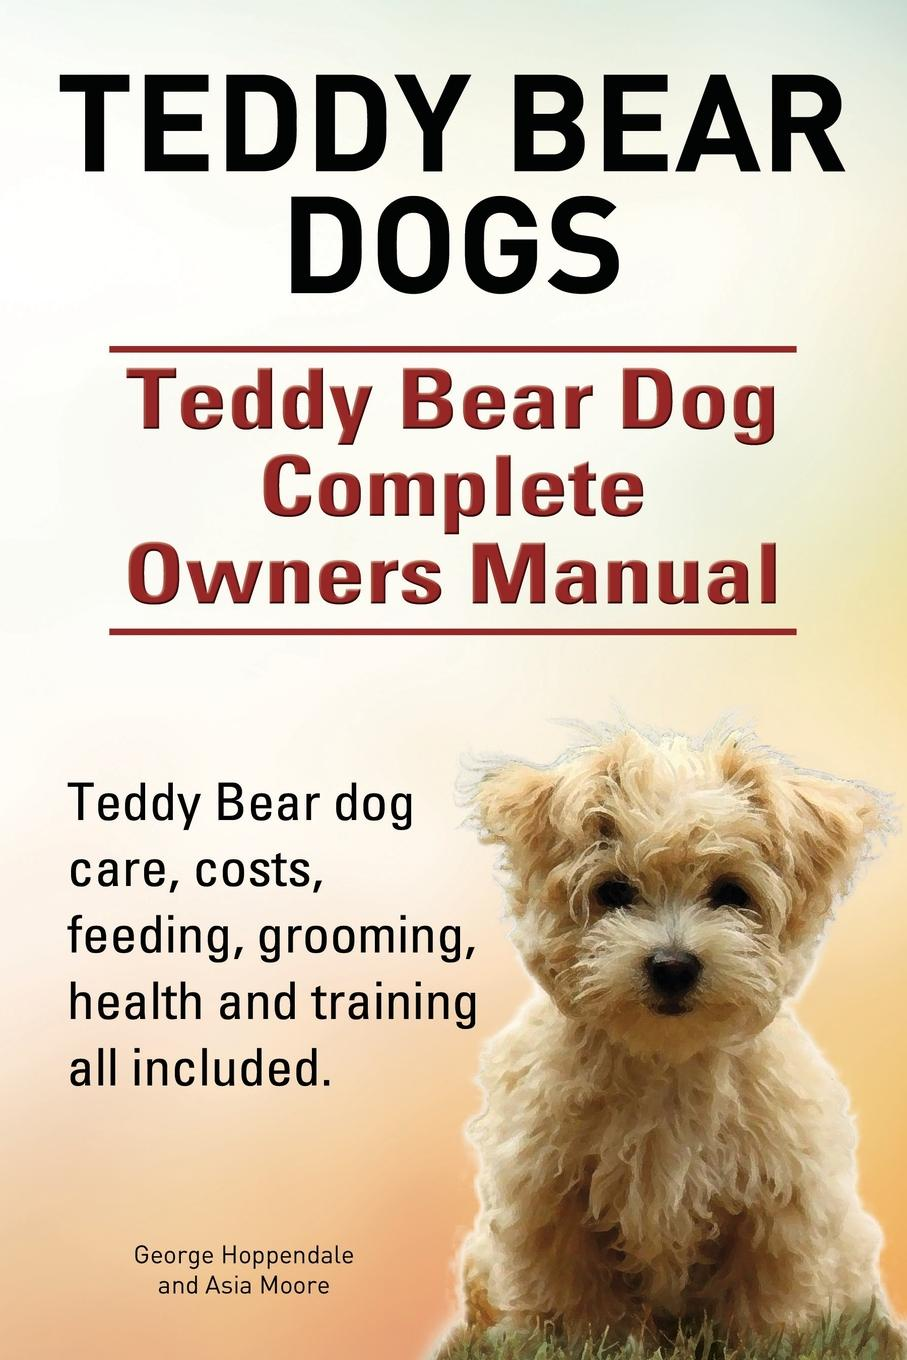 George Hoppendale, Asia Moore Teddy Bear dogs. Teddy Bear Dog Complete Owners Manual. Teddy Bear dog care, costs, feeding, grooming, health and training all included. elmer and the lost teddy